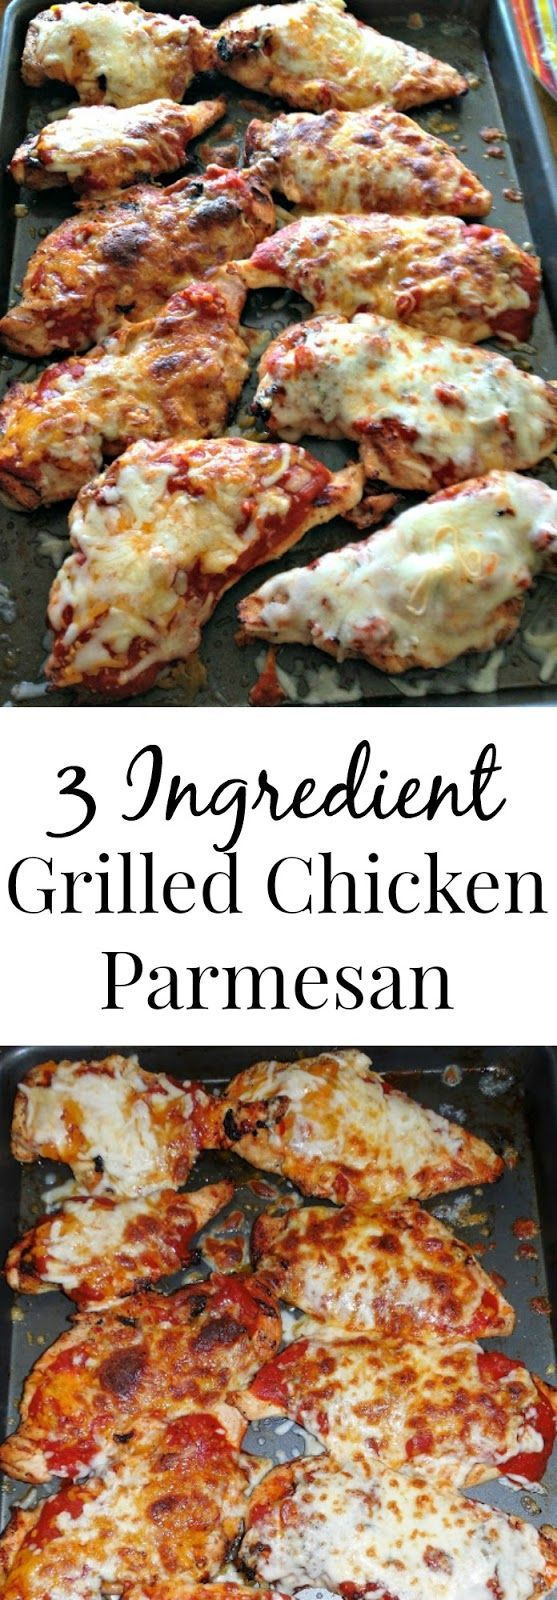 Visit 3 Ingredient Grilled Chicken Parmesan- easy and delicious! Much healthier than the breaded and fried version. http://www.nutritionistreviews.com